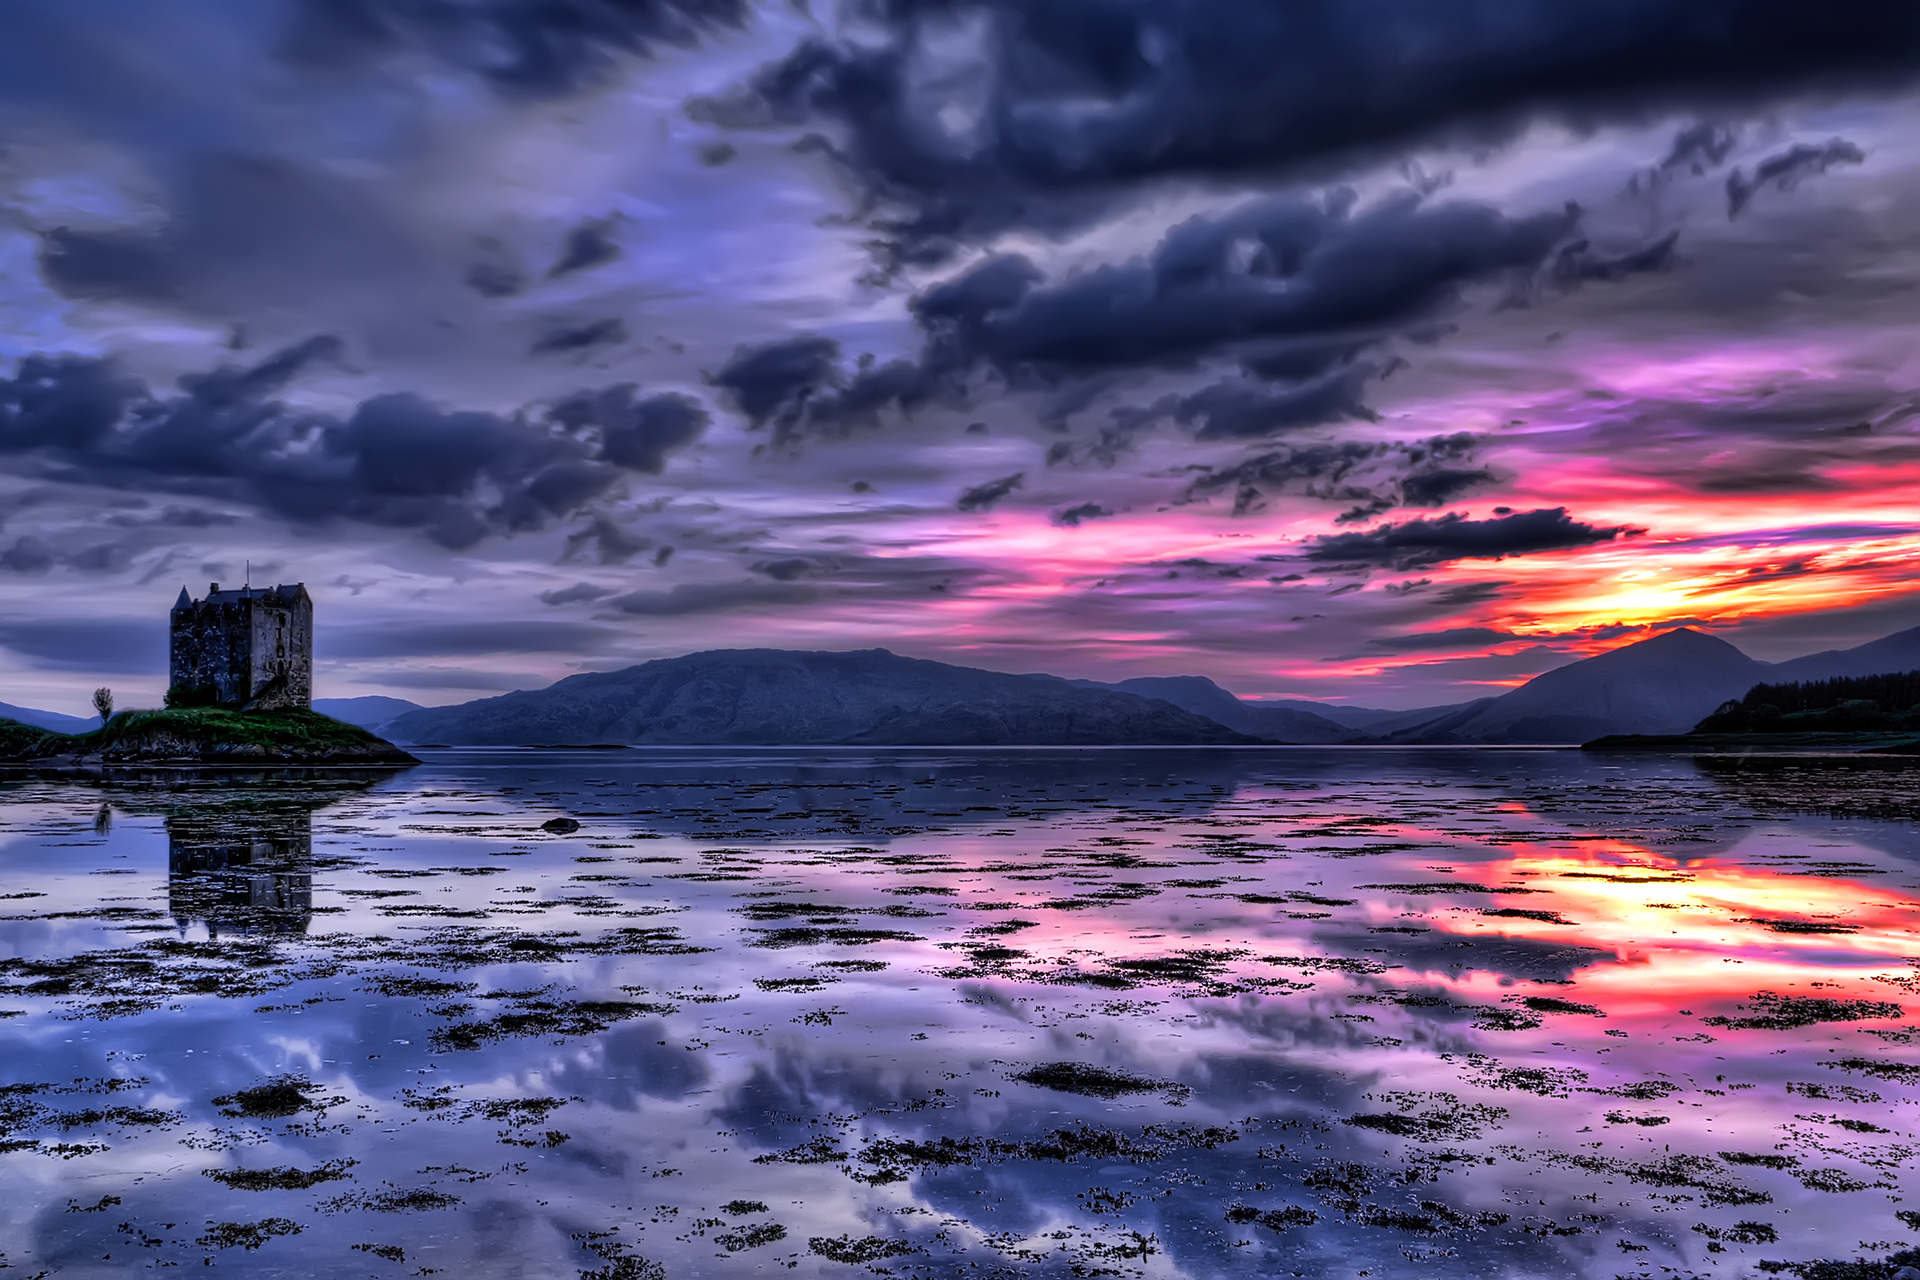 Beautiful-sunset-in-Scotland-with-Stalker-castle-in-the-background